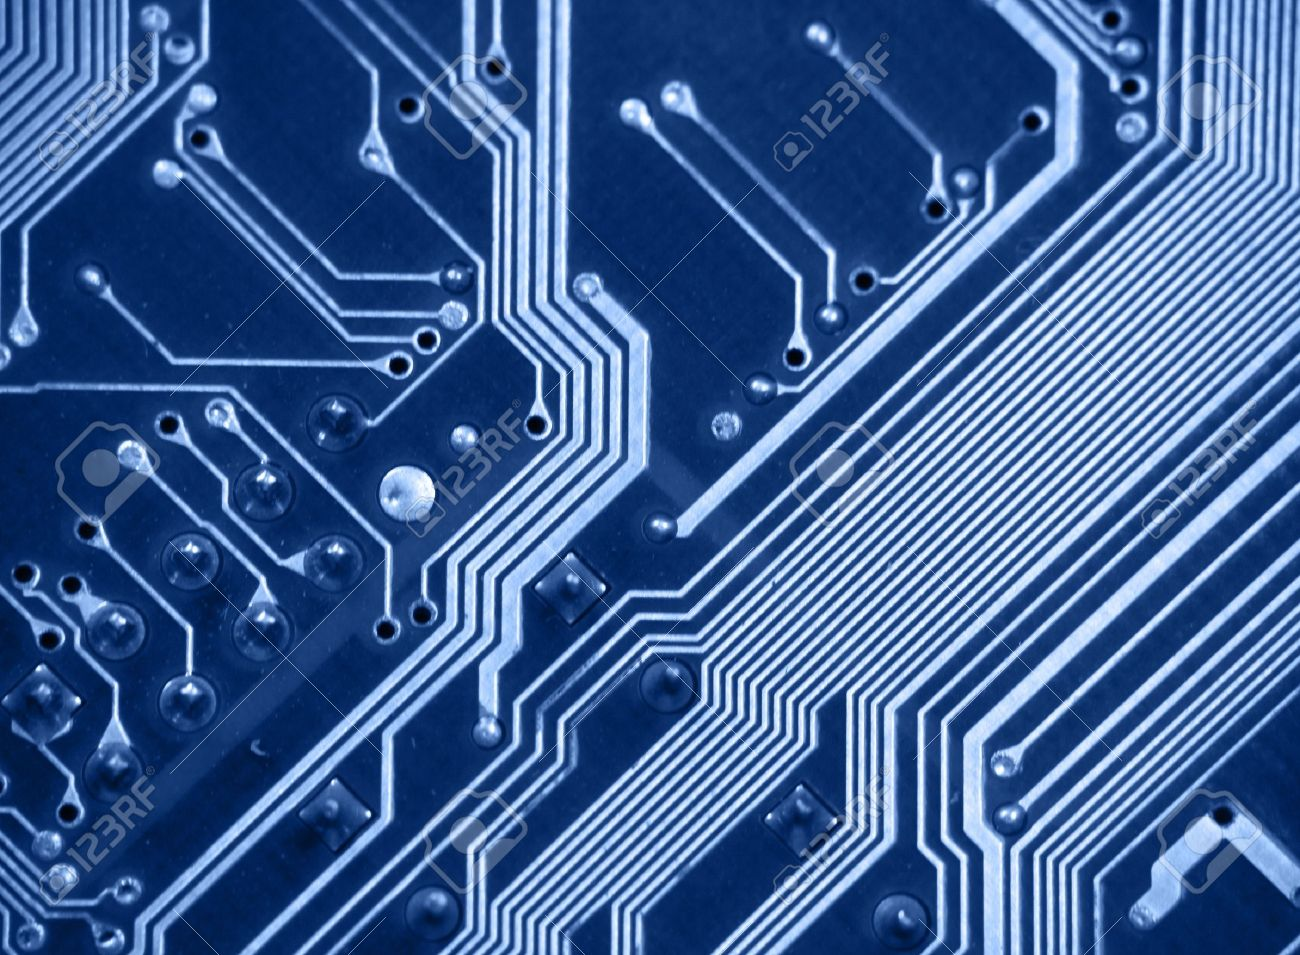 Detail Of Printed Circuit Board Old Motherboard Stock Photo Pcb 8591536